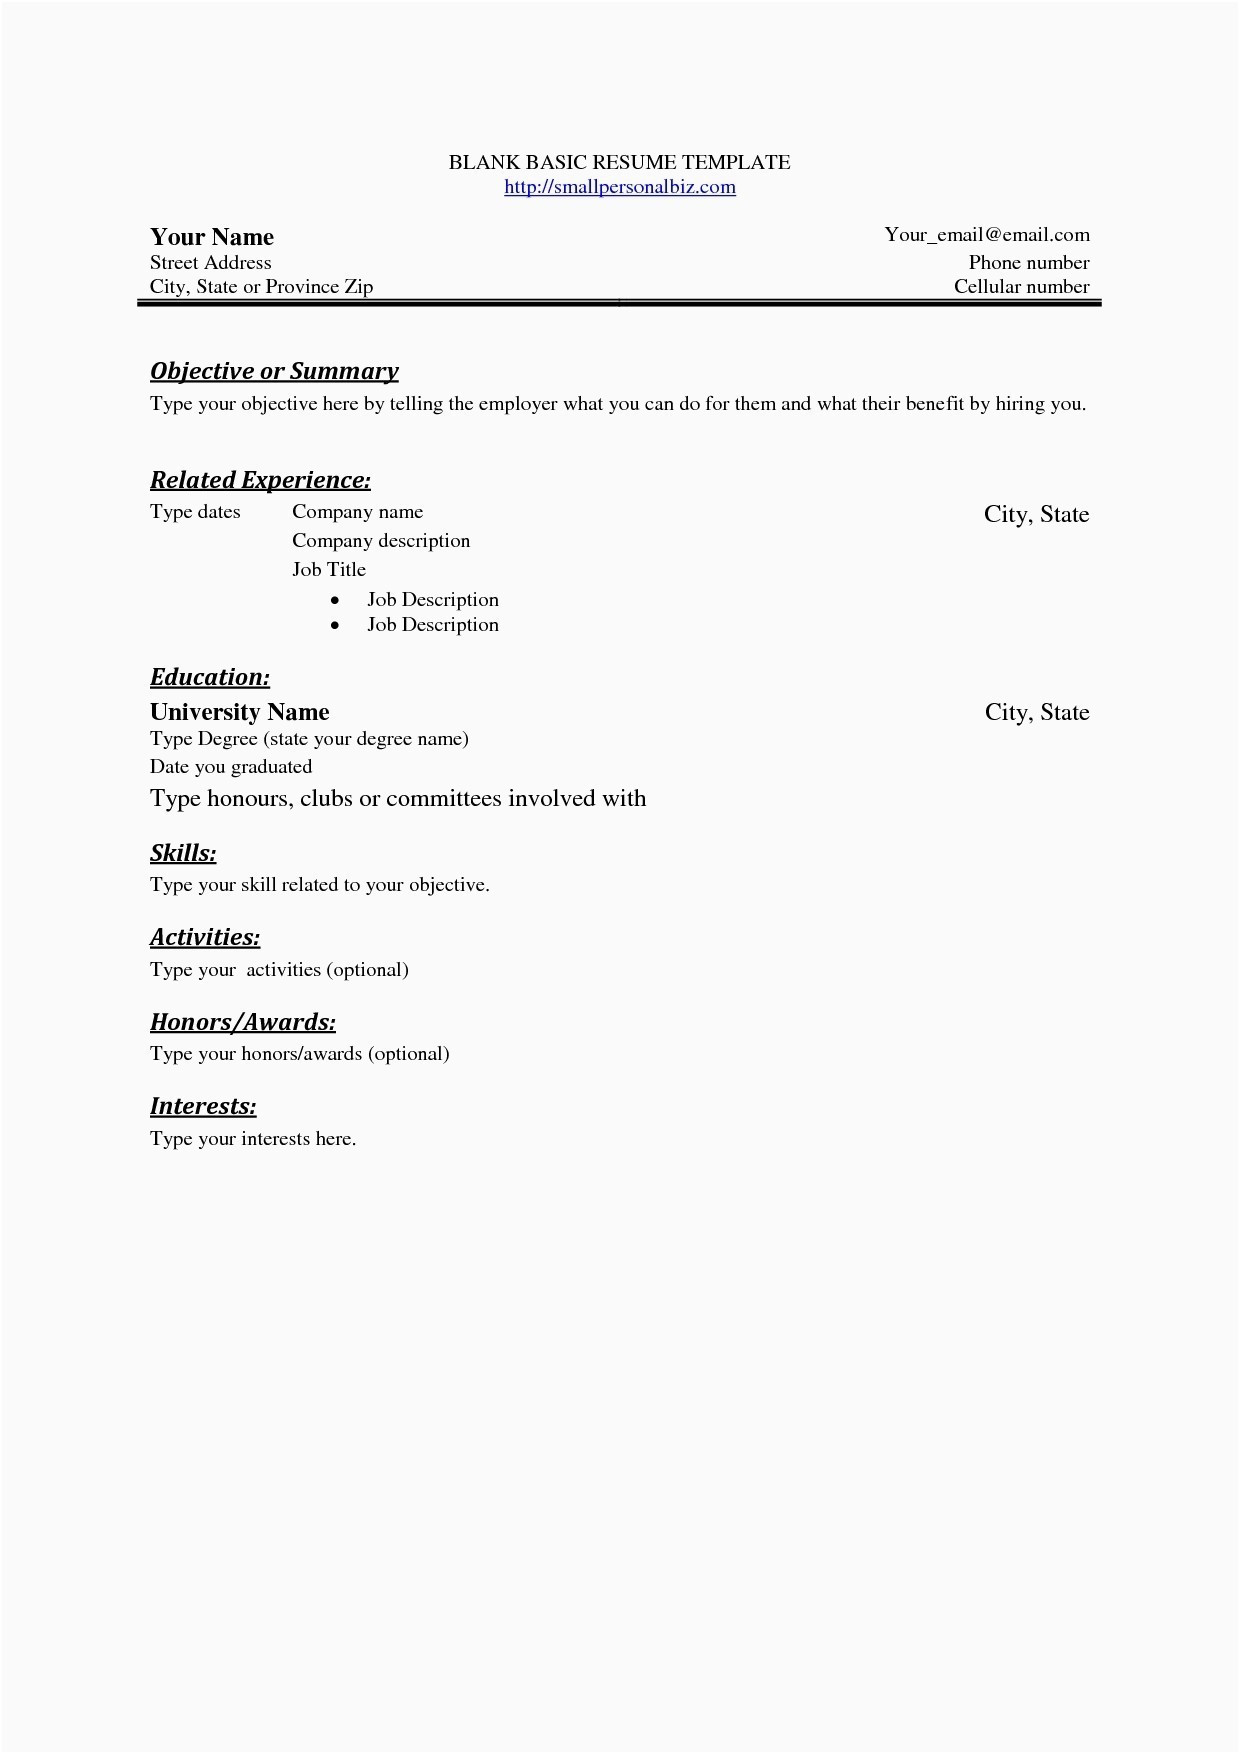 Actor Resume Template Free - Free Cease and Desist Letter Template 2018 Cfo Resume Template